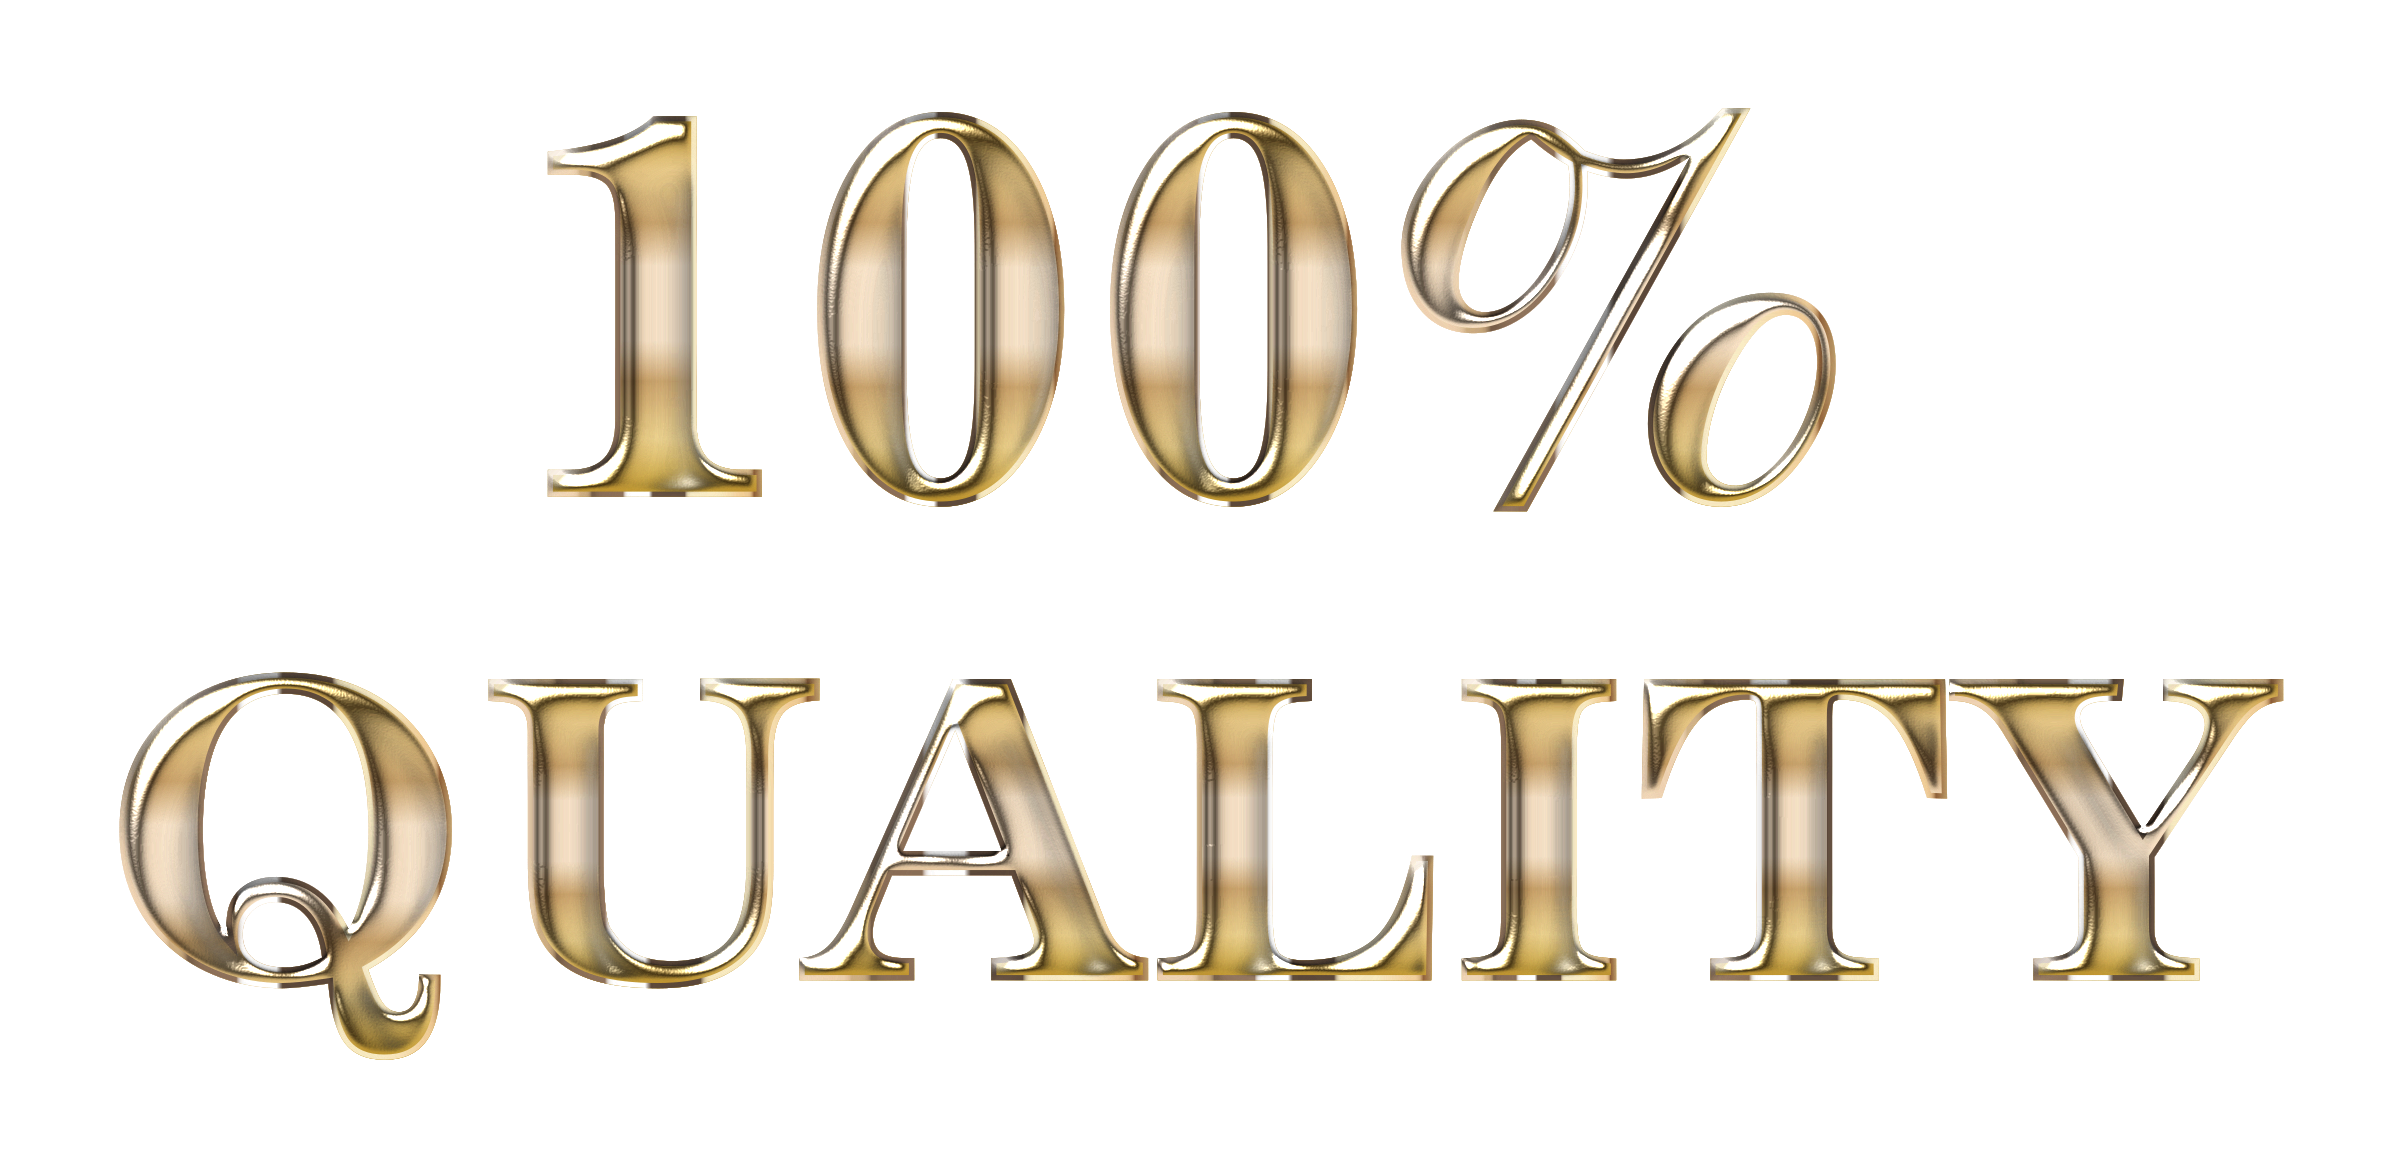 Percent typography enhanced no. 100 clipart quality